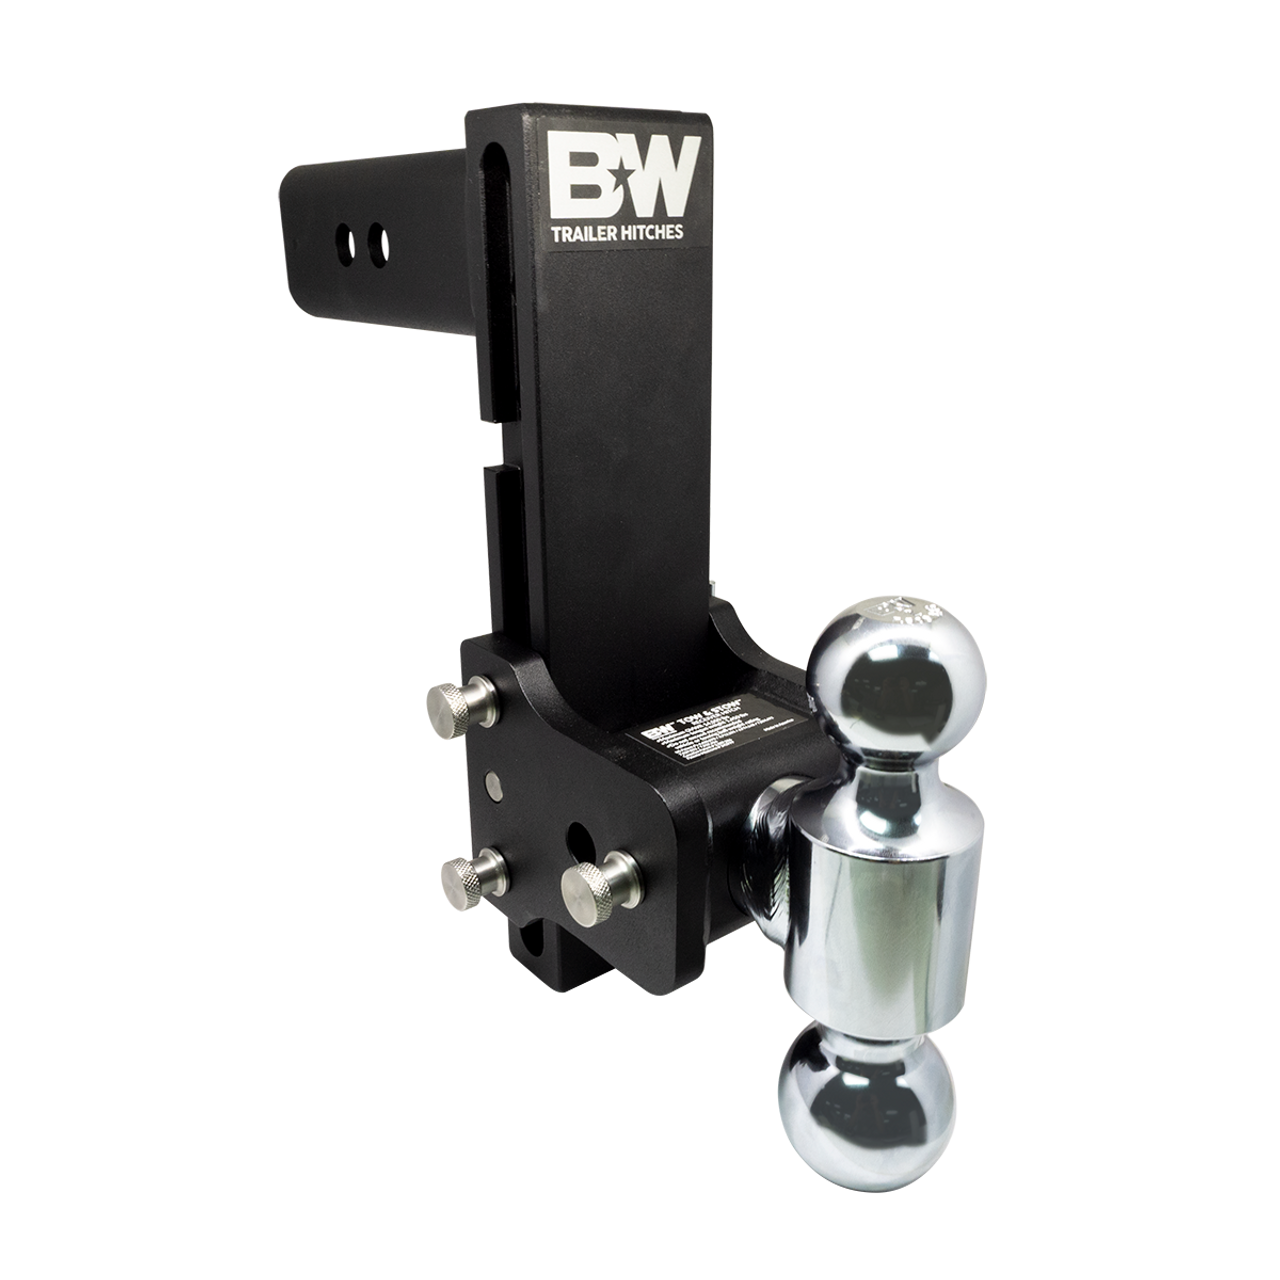 """BW20043B --- B&W 2.5"""" Shank Tow and Stow Adjustable Ball Mount with Two Hitch Balls, 8.5"""" Maximum Drop"""